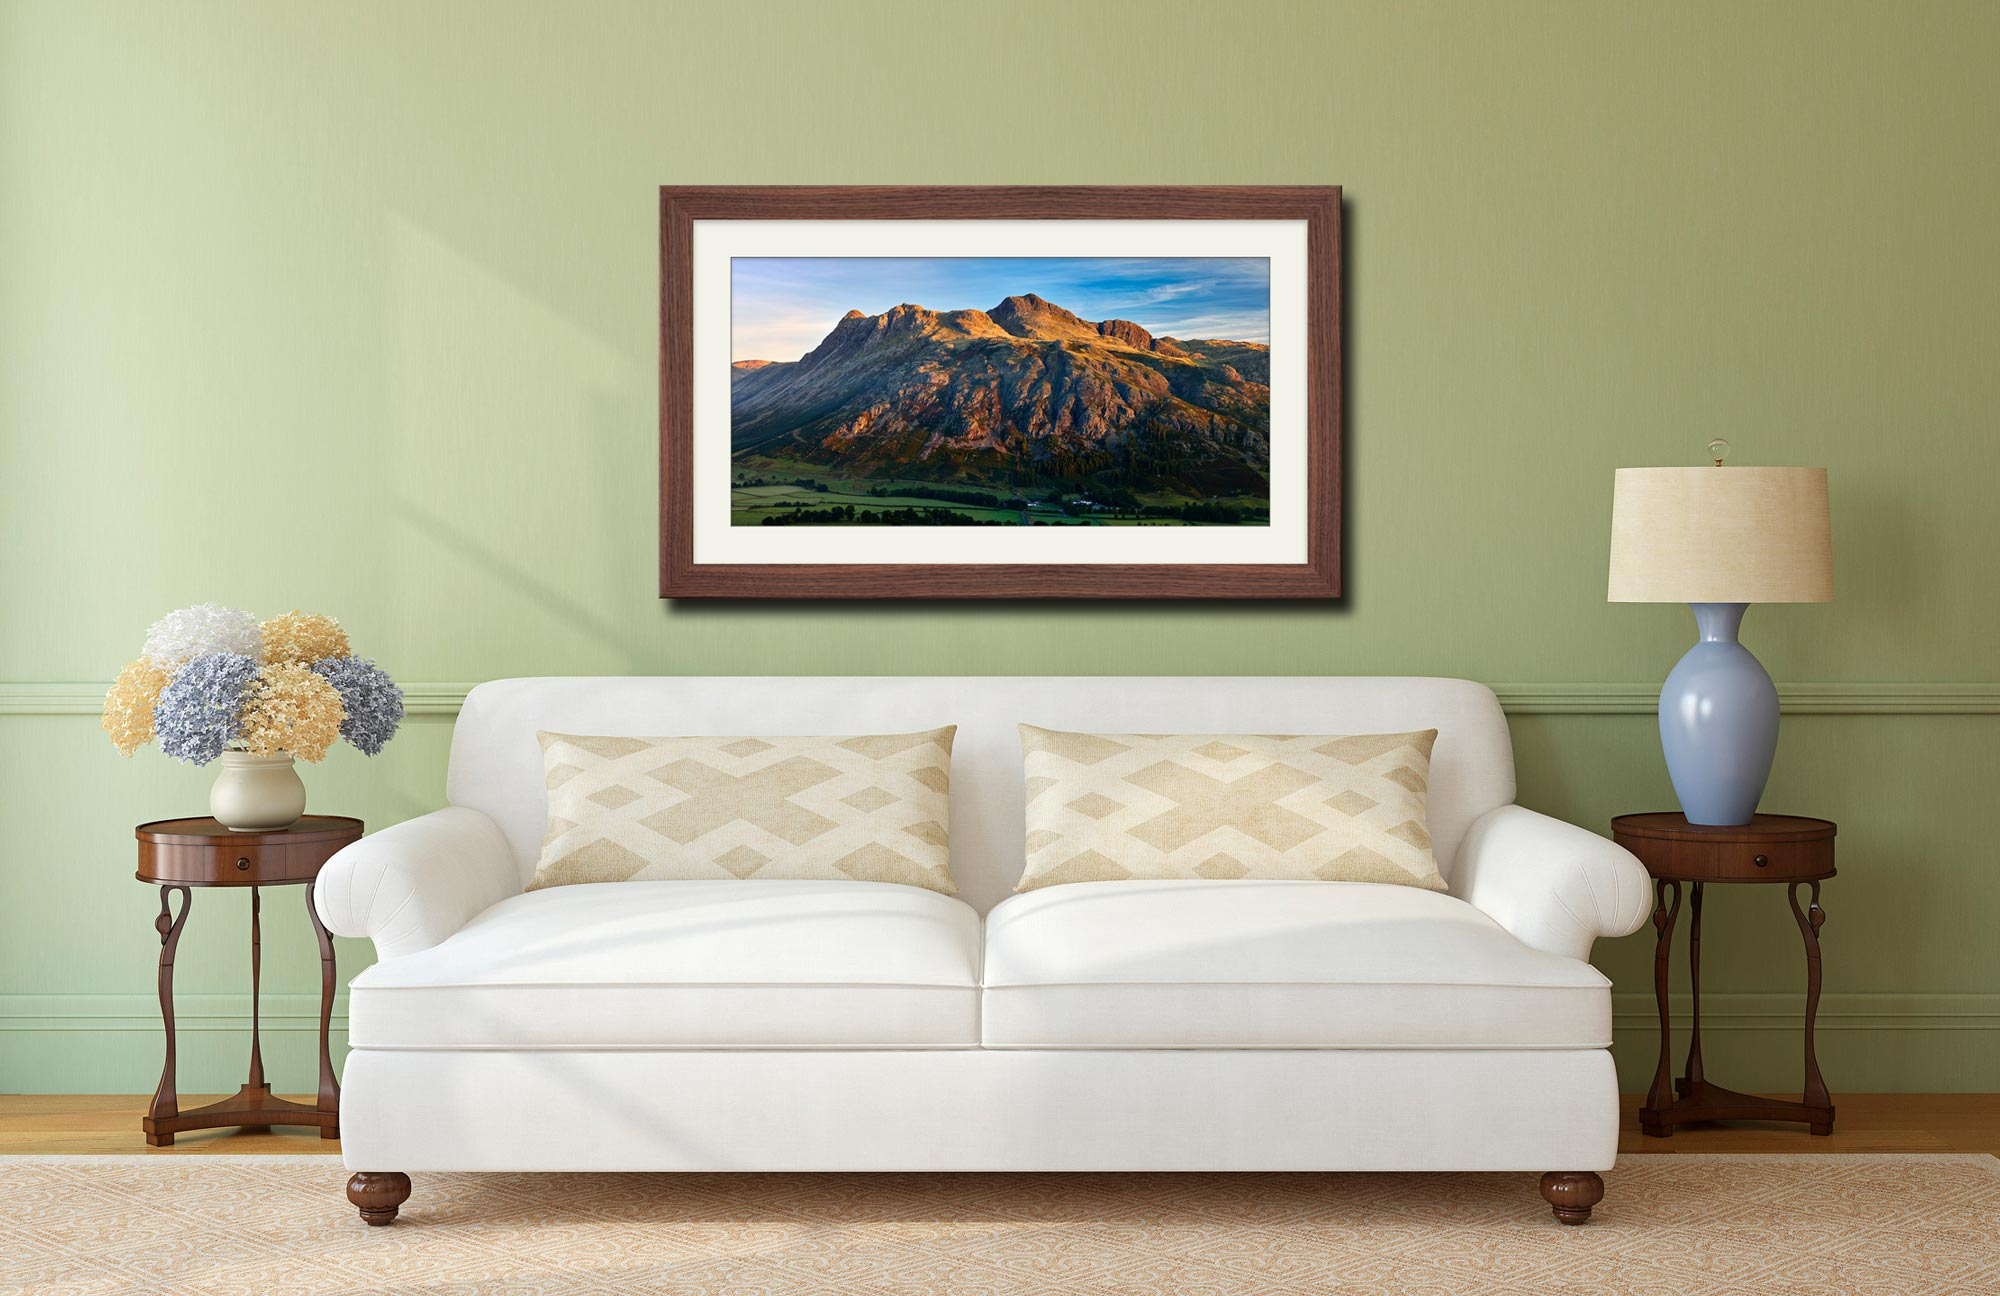 The Langdale Pikes in the Morning Light - Framed Print with Mount on Wall